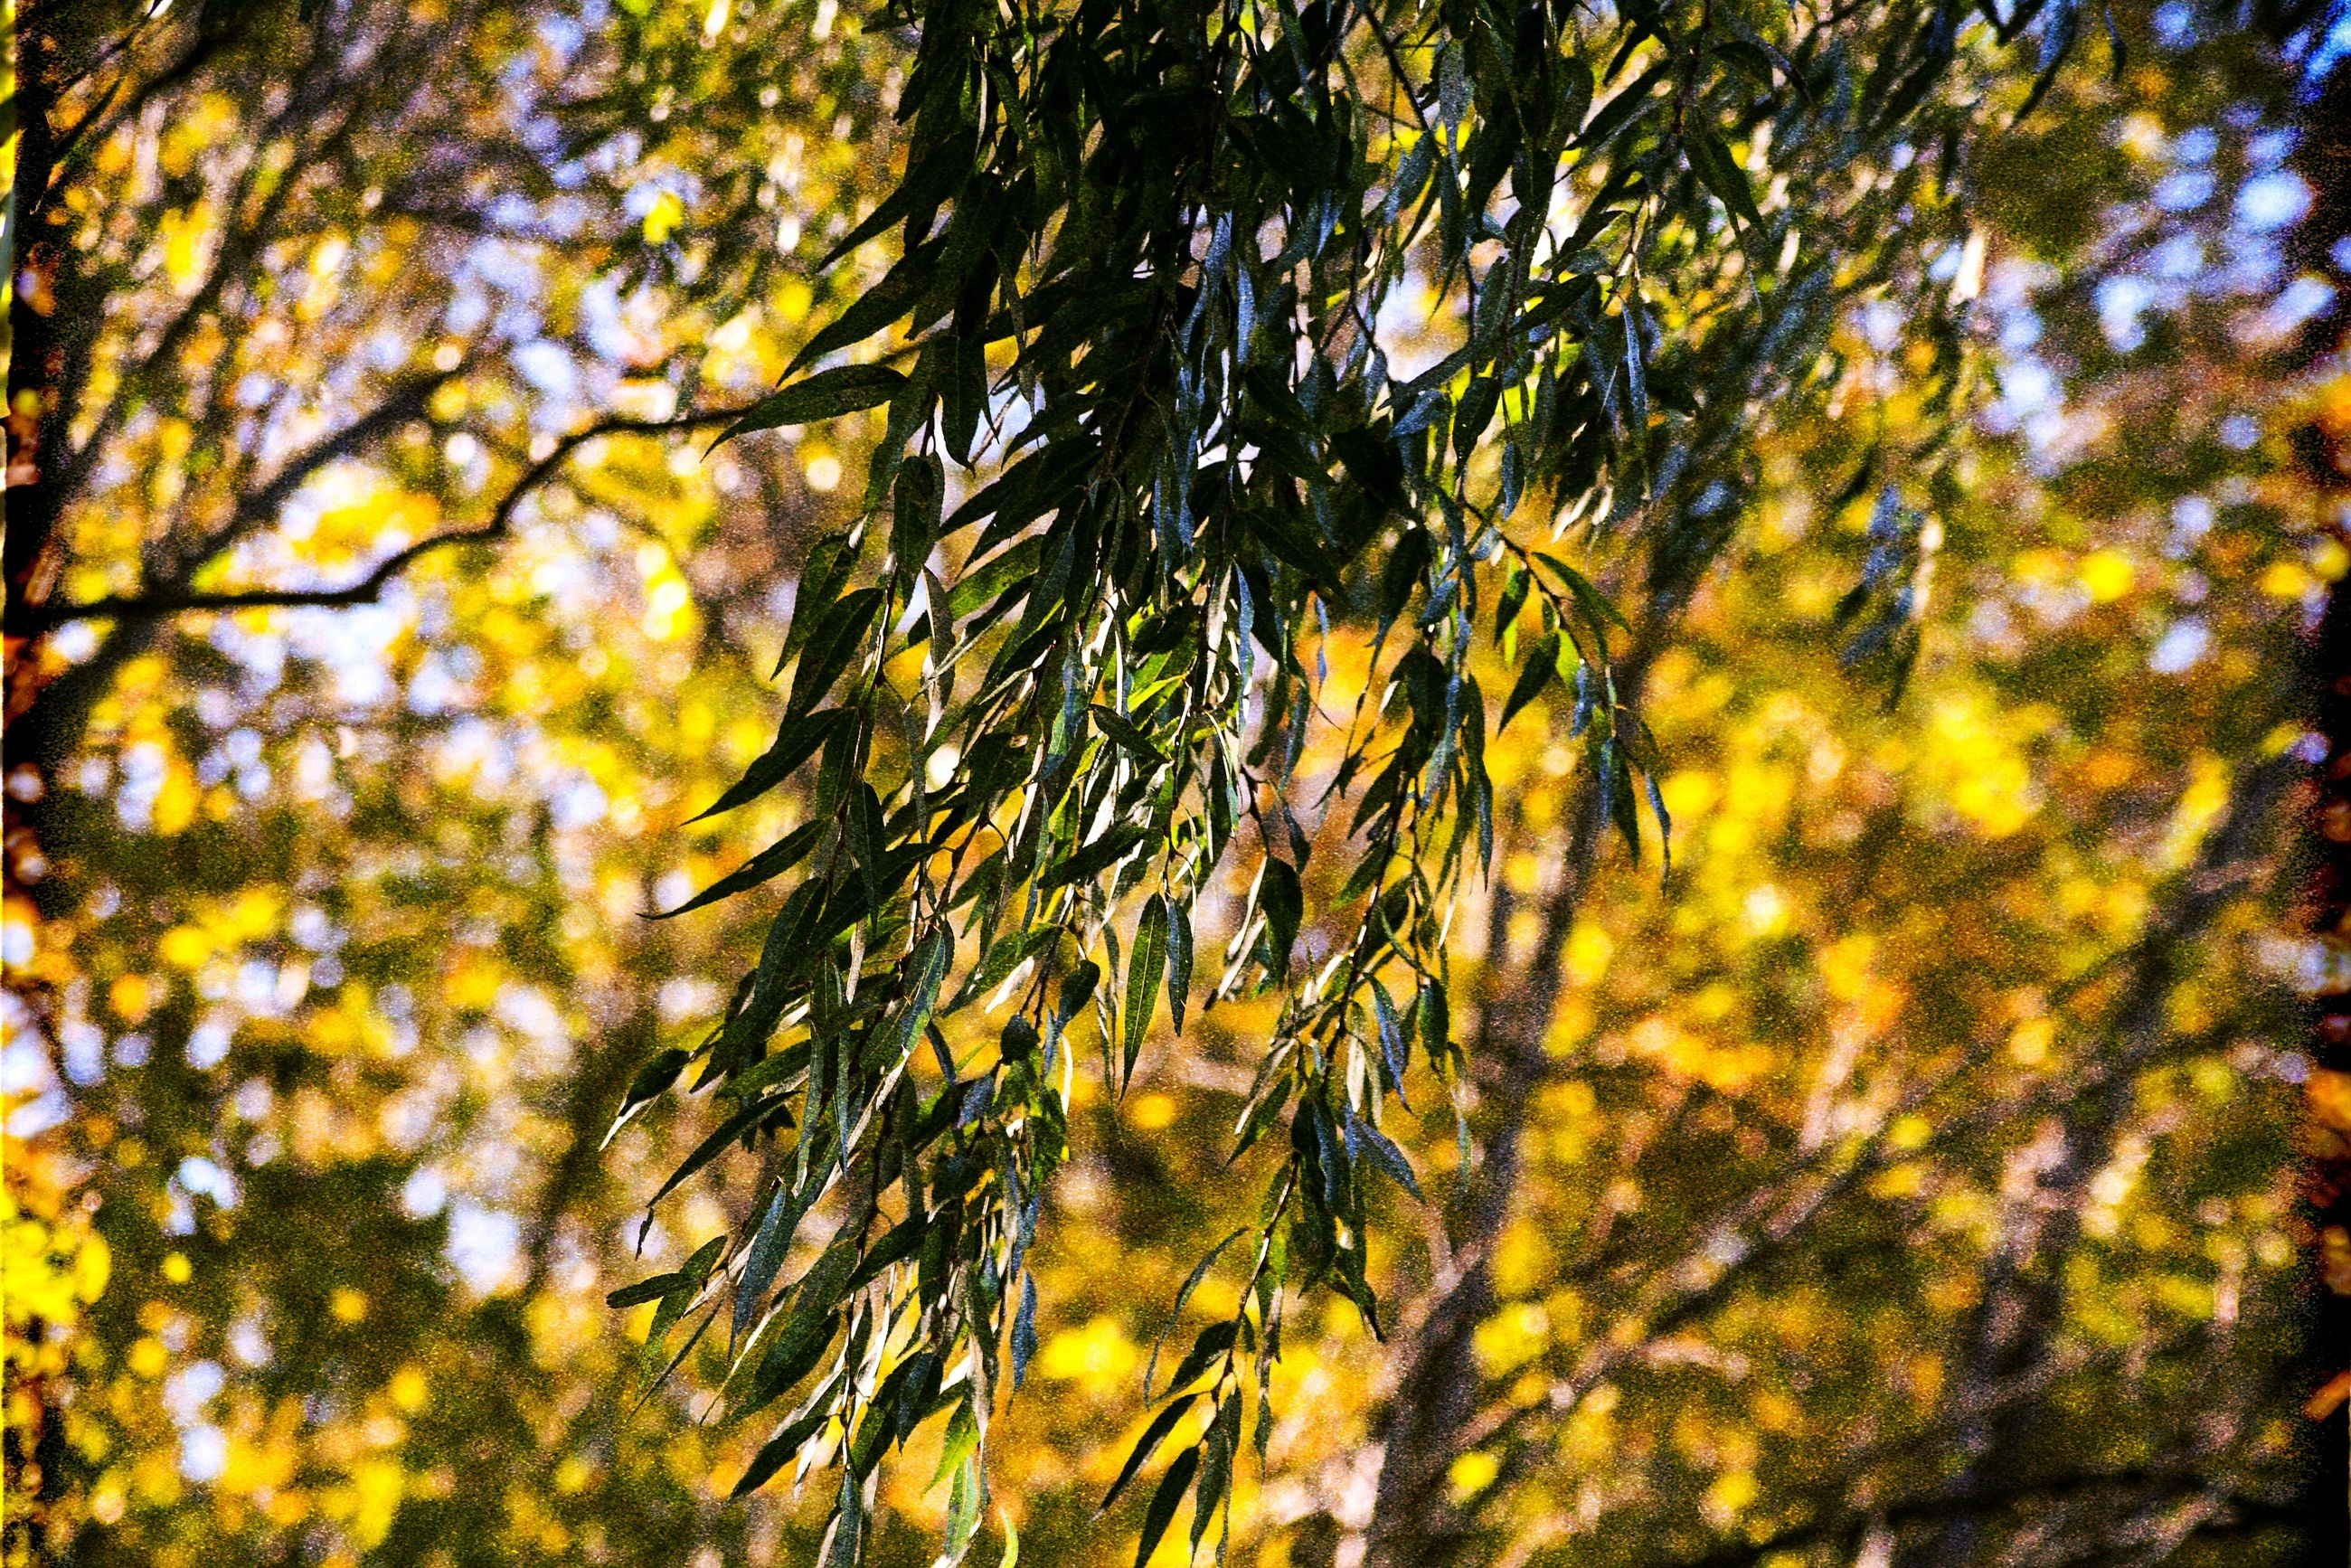 tree, plant, beauty in nature, nature, growth, branch, no people, leaf, day, plant part, focus on foreground, tranquility, green color, autumn, outdoors, close-up, selective focus, low angle view, sunlight, forest, pine tree, change, coniferous tree, tree canopy